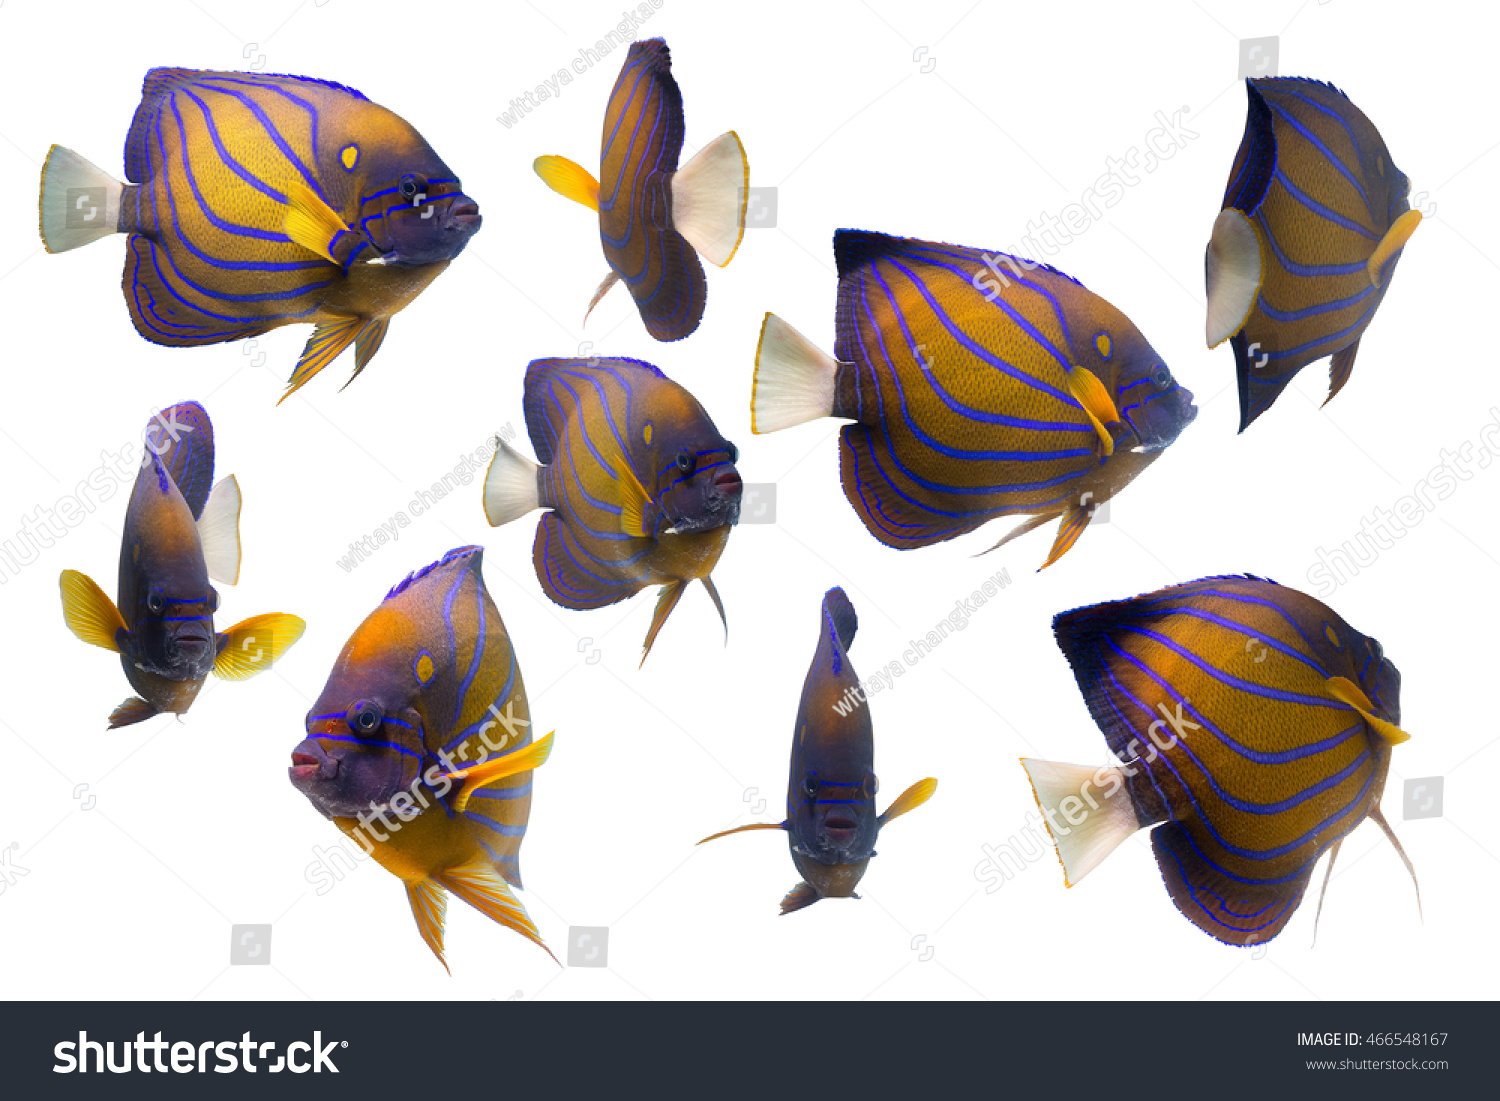 School Of Marlin Fish Isolated On White Background Stock